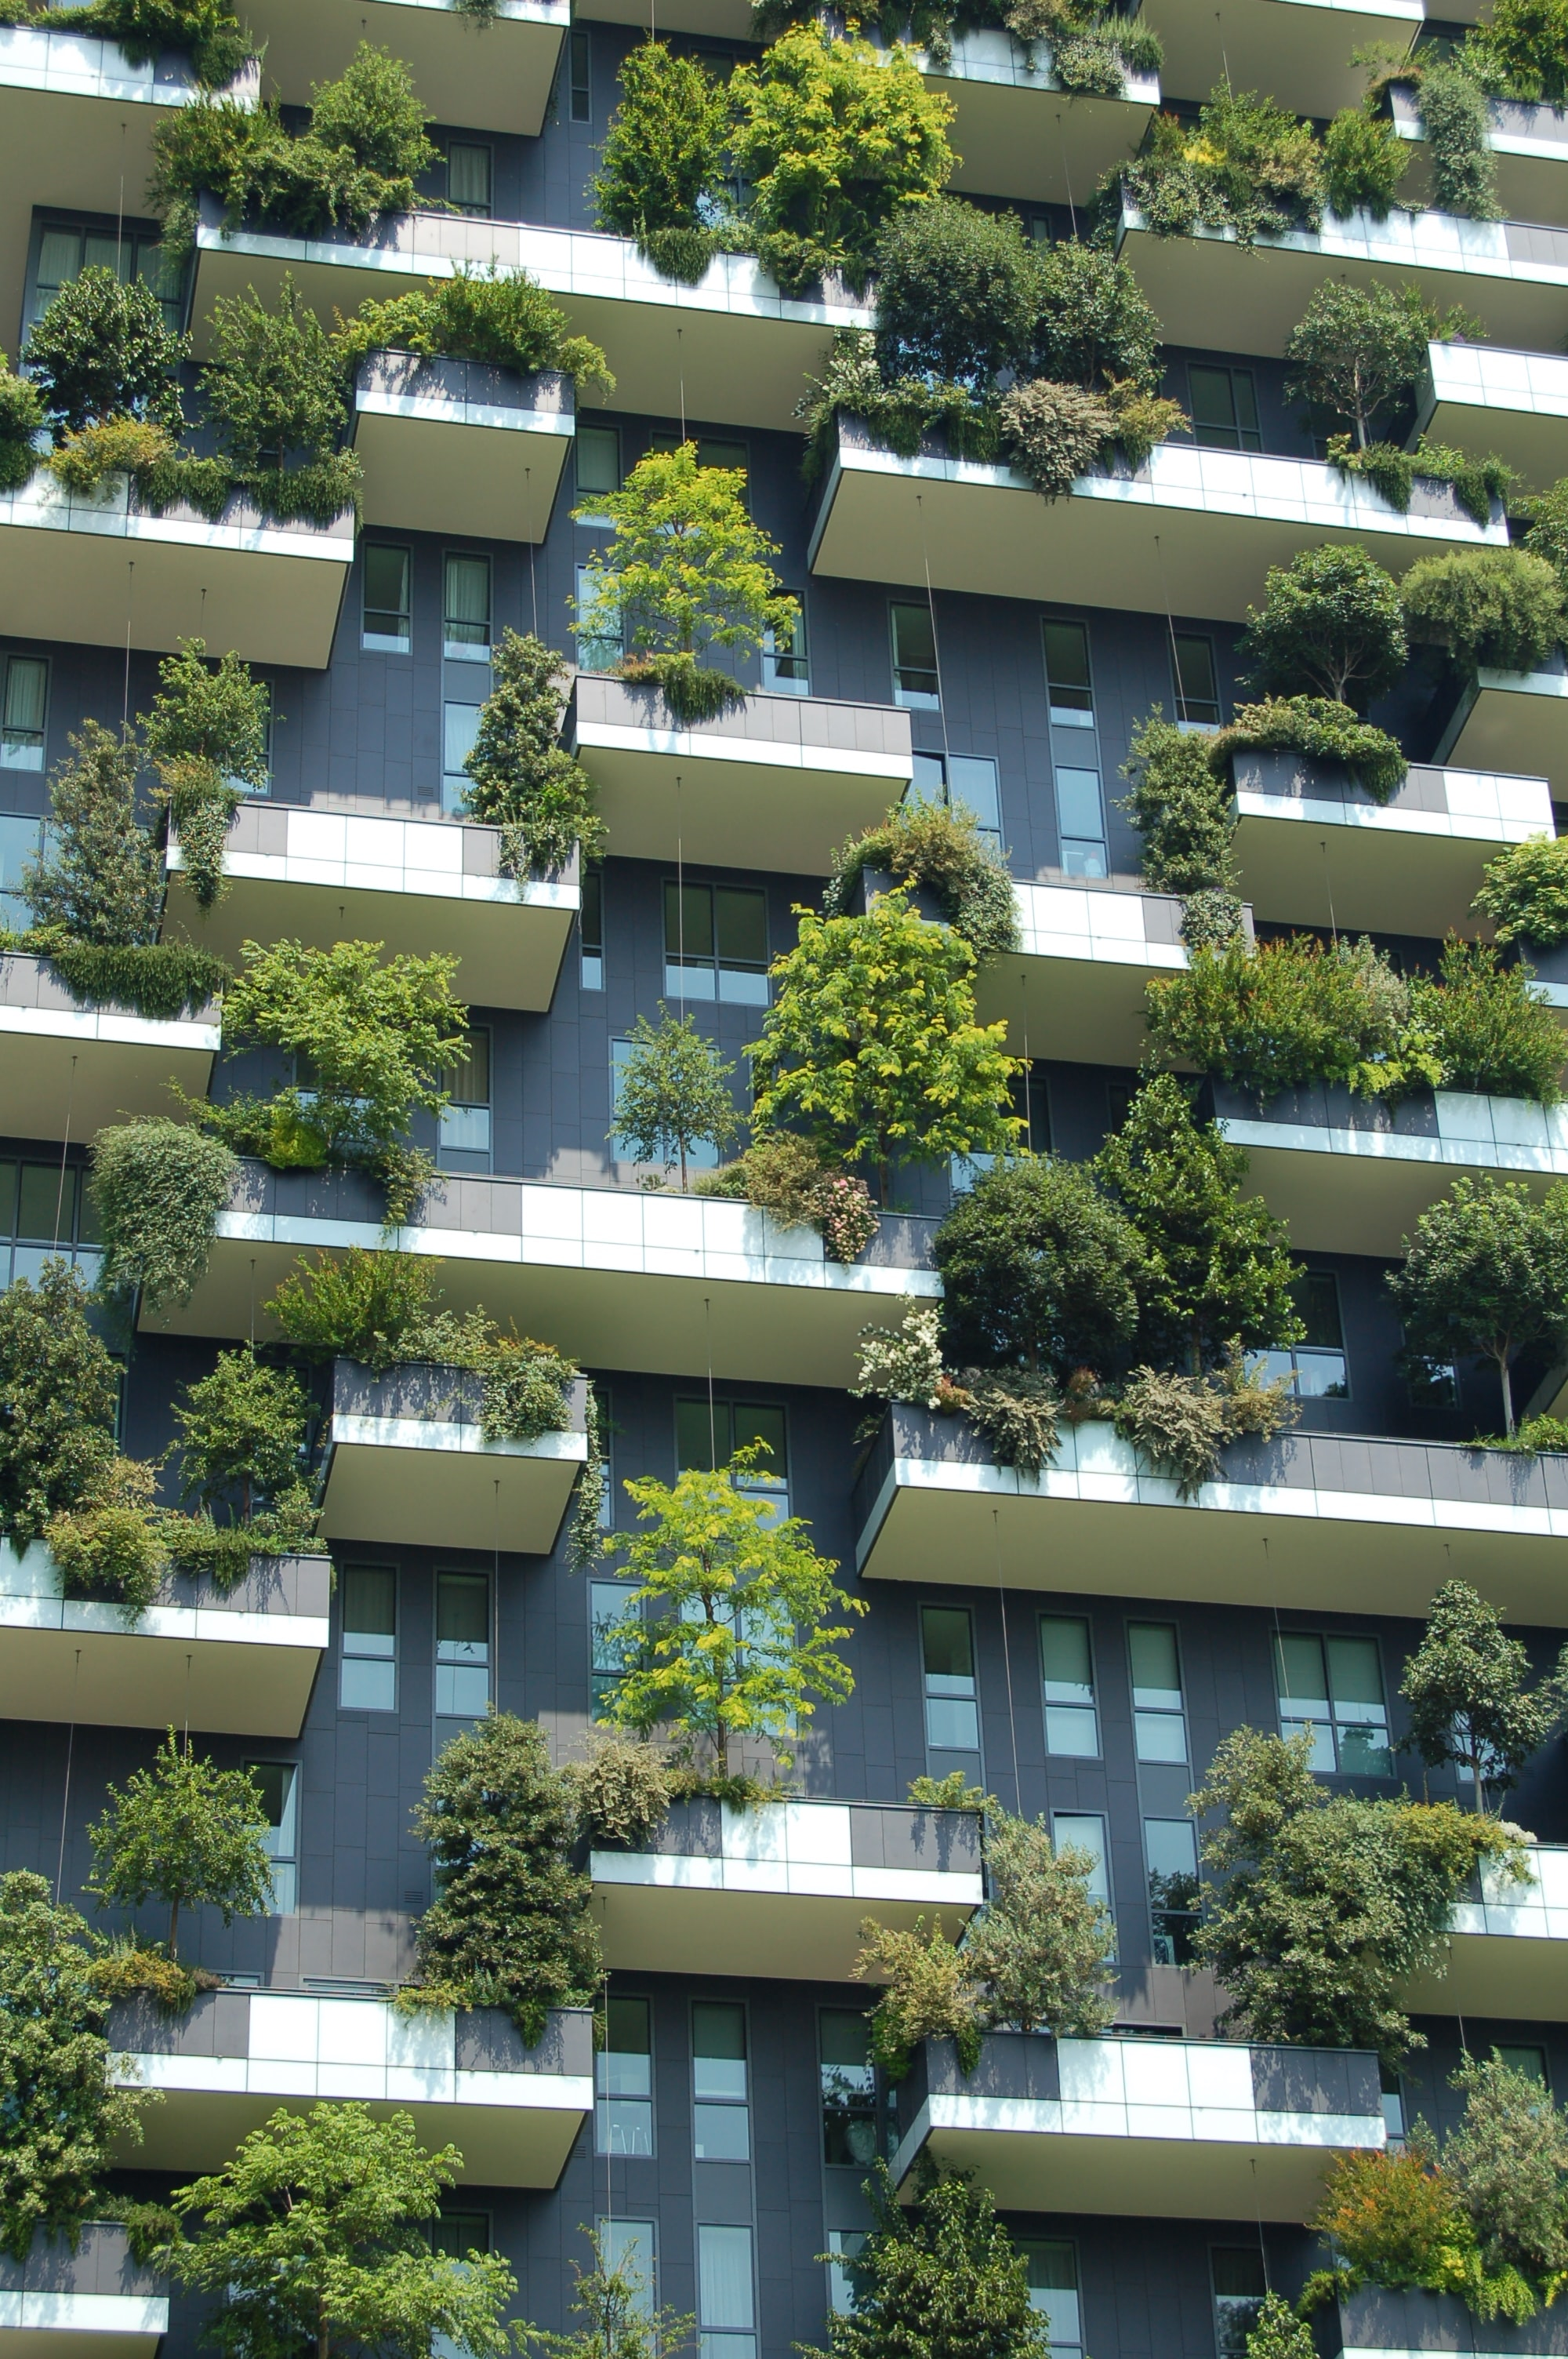 low angle photo of gray building with green plants